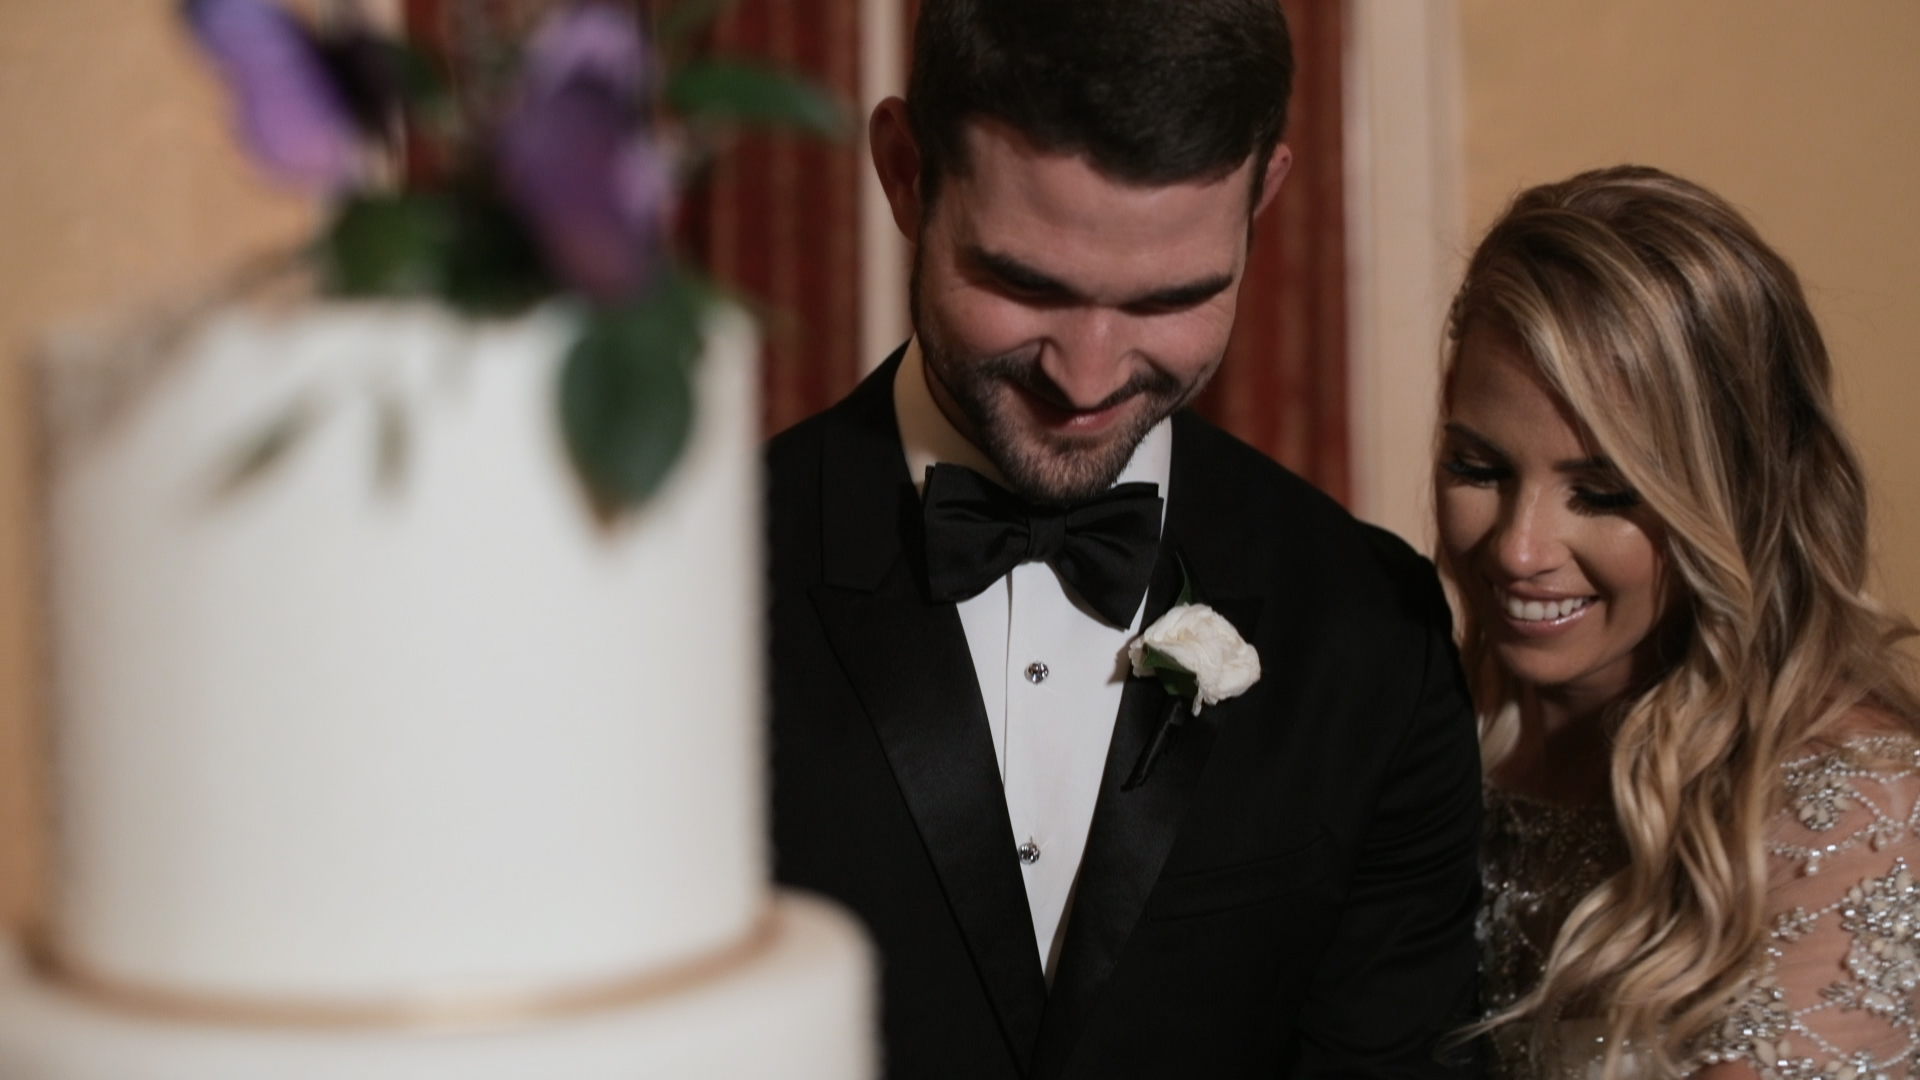 Latrobe New Orleans Wedding Video_Shaina and Seth_Cake cutting